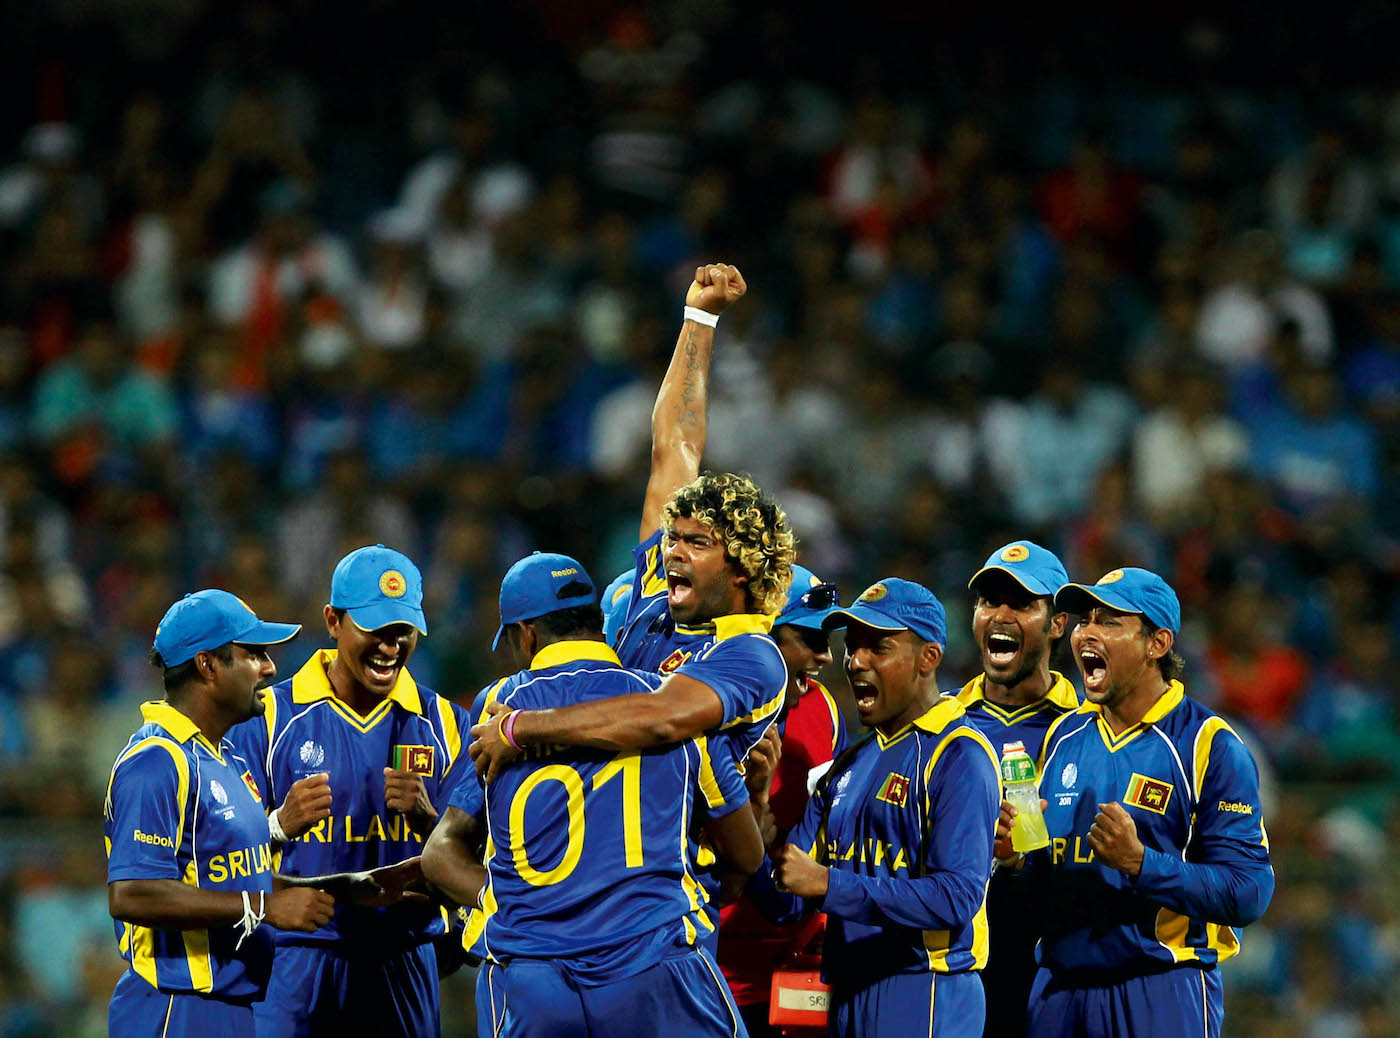 Lasith Malinga silenced the 43,000-strong crowd at the Wankede by removing Virender Sehwag and Sachin Tendulkar in quick succession